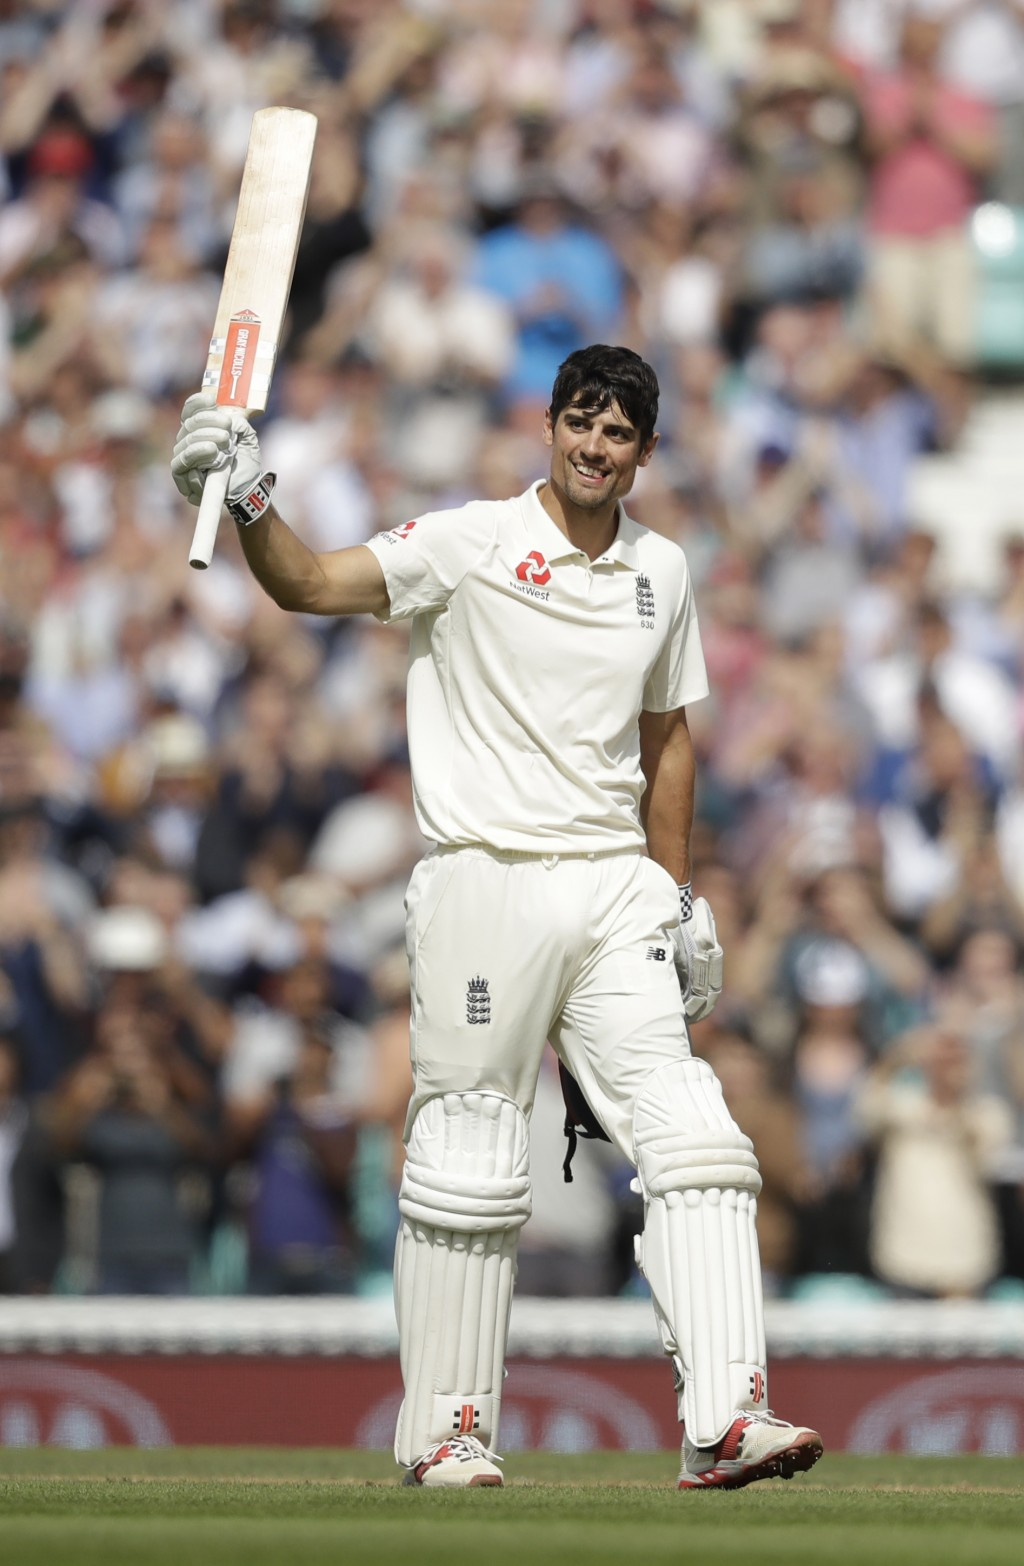 England's Alastair Cook, in his last ever batting innings before retiring from test cricket, celebrates reaching his century during the fifth cricket